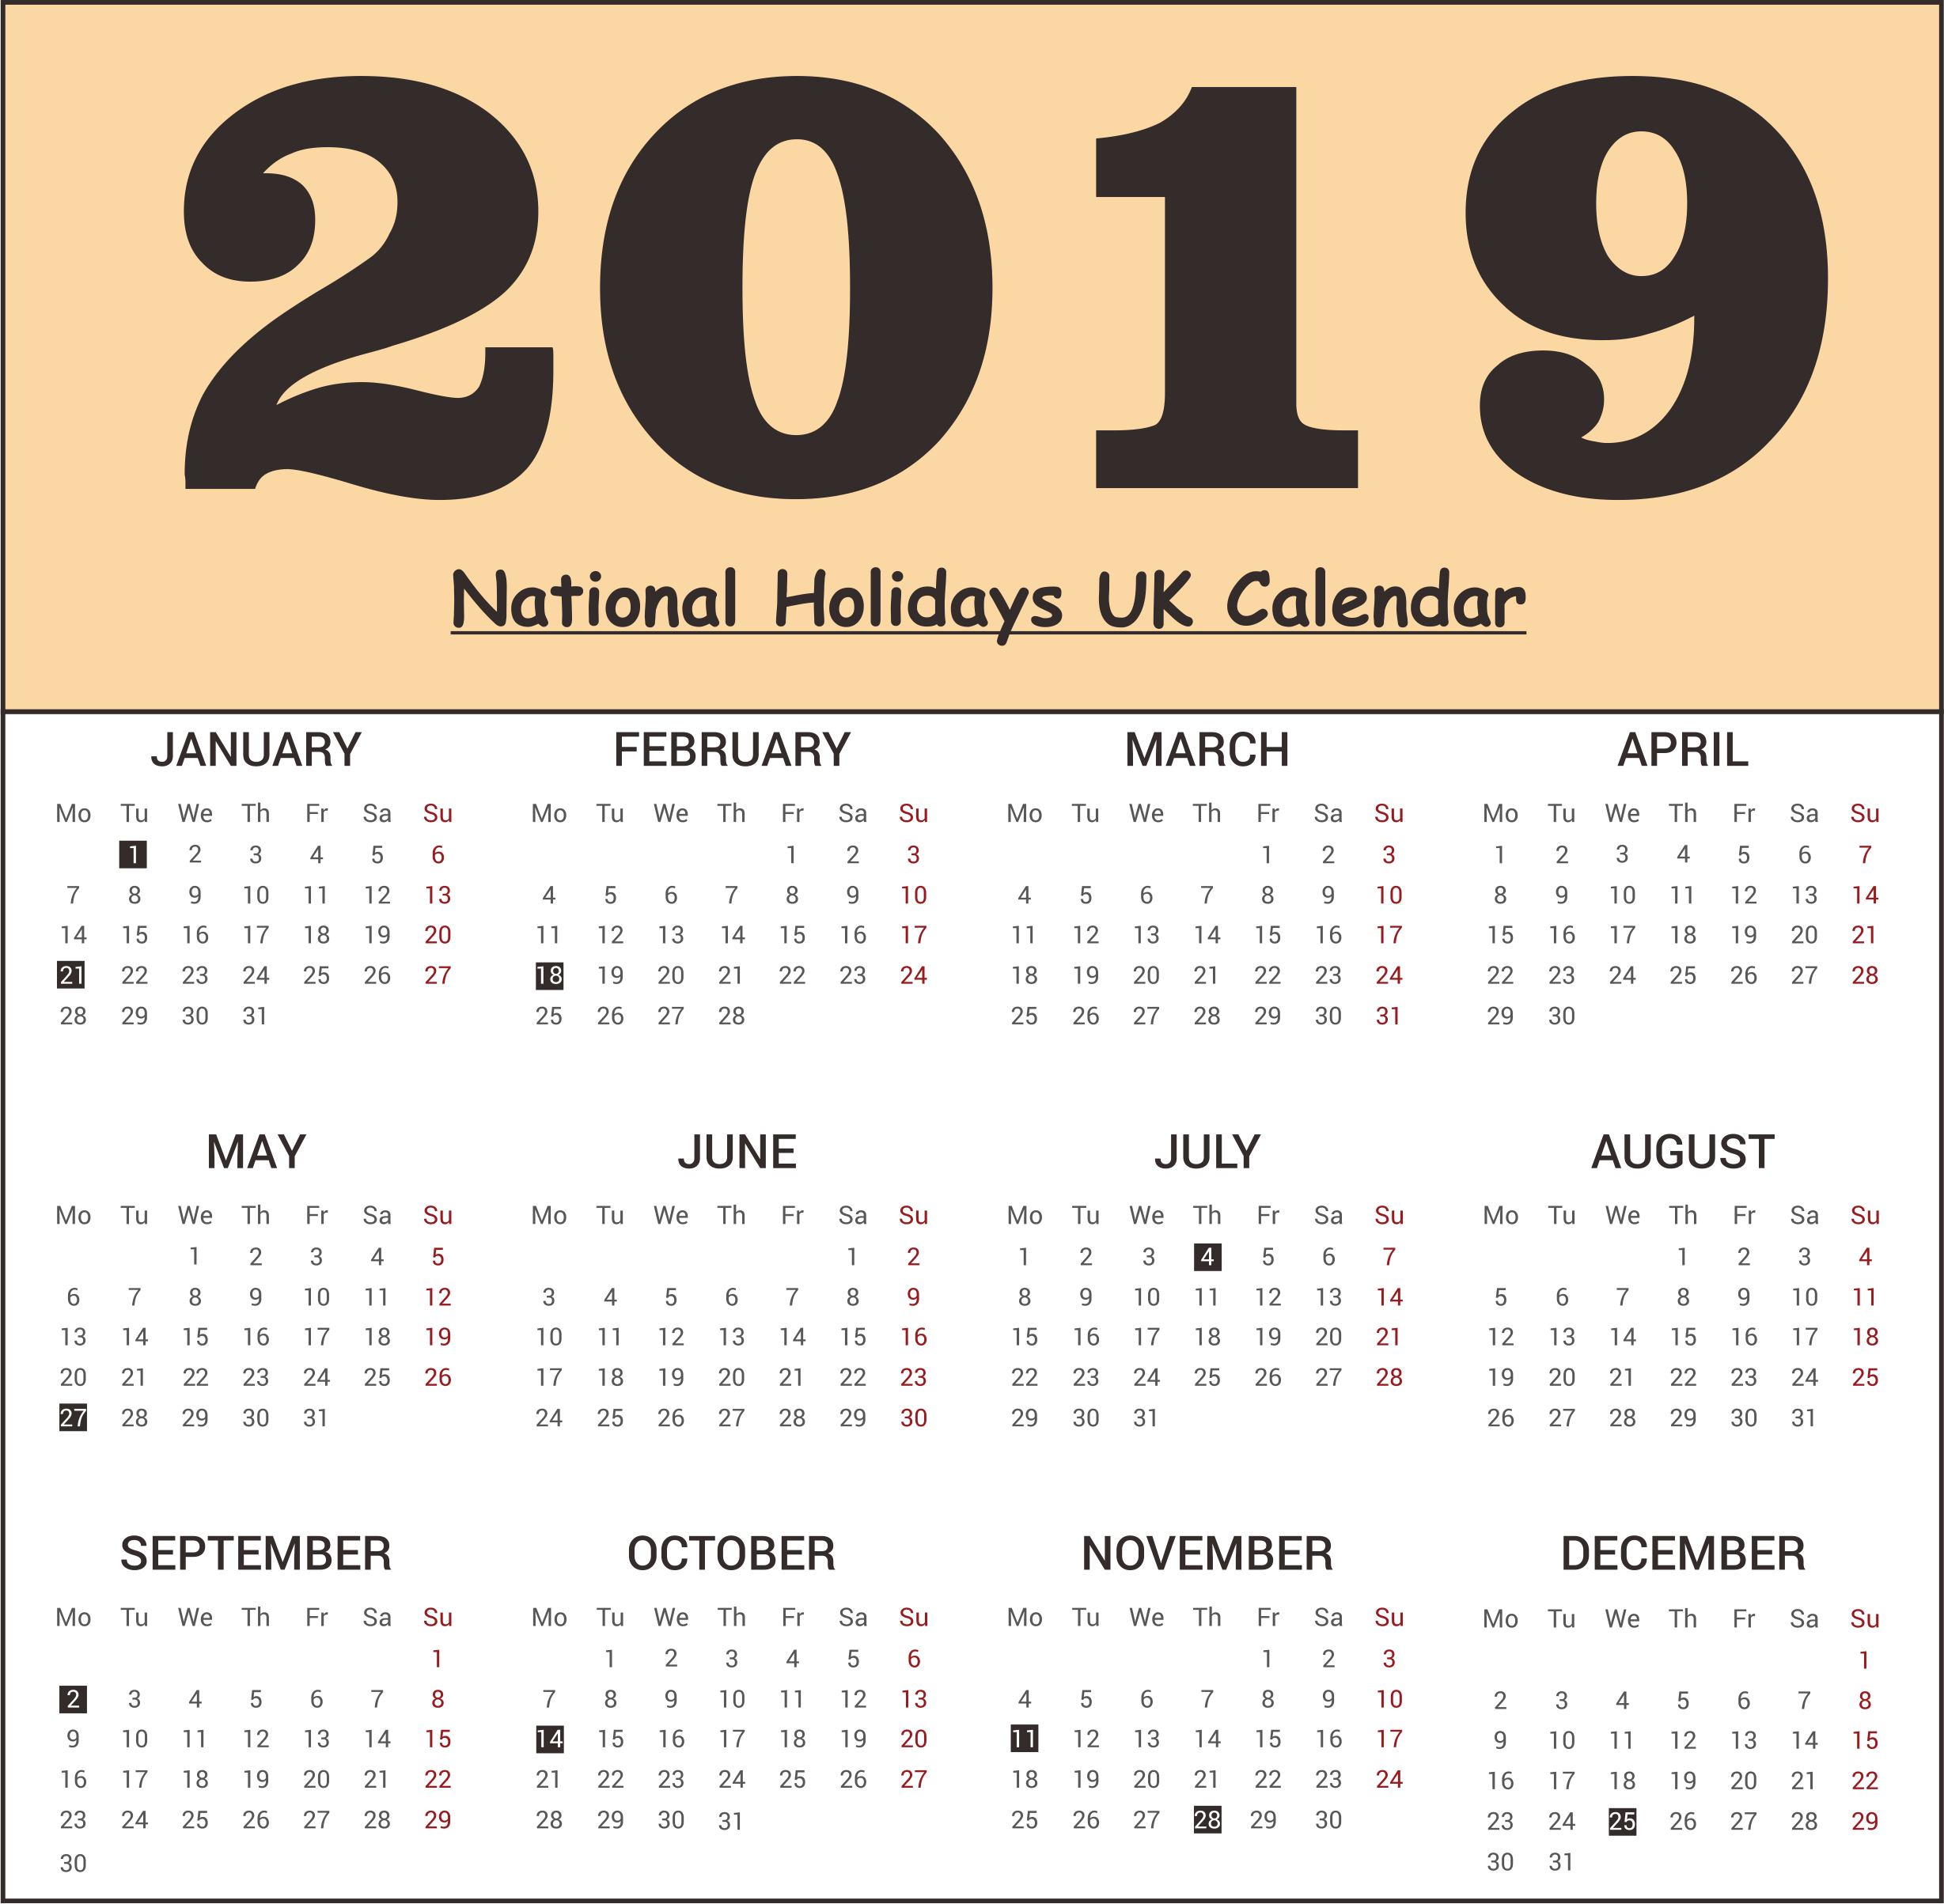 UK National Holidays 2019 Templates